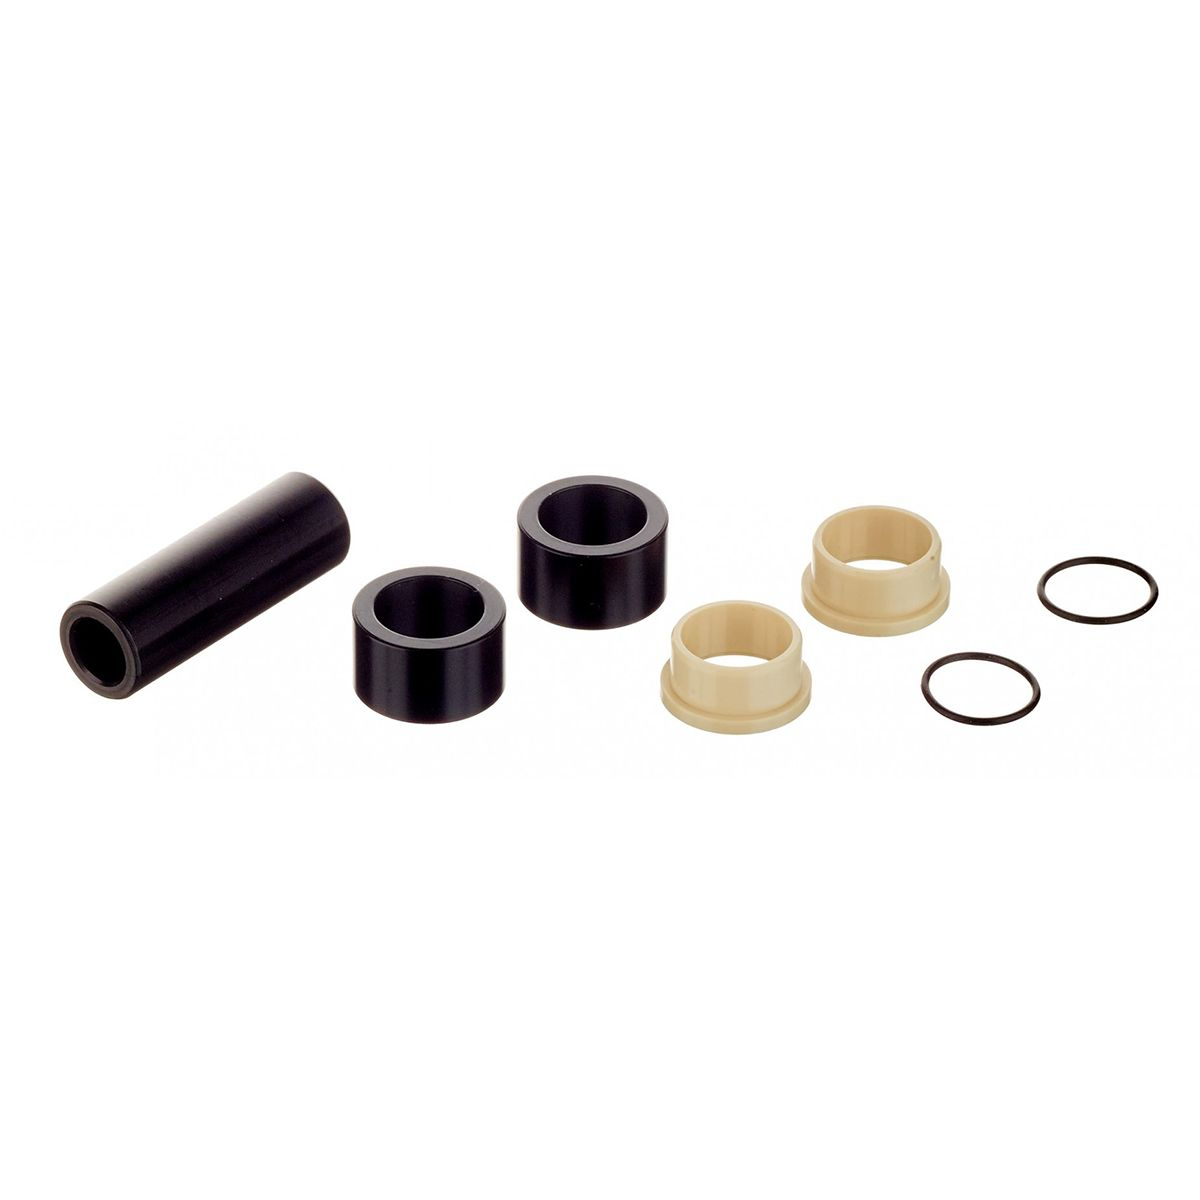 FOX bushing kit for rear shocks